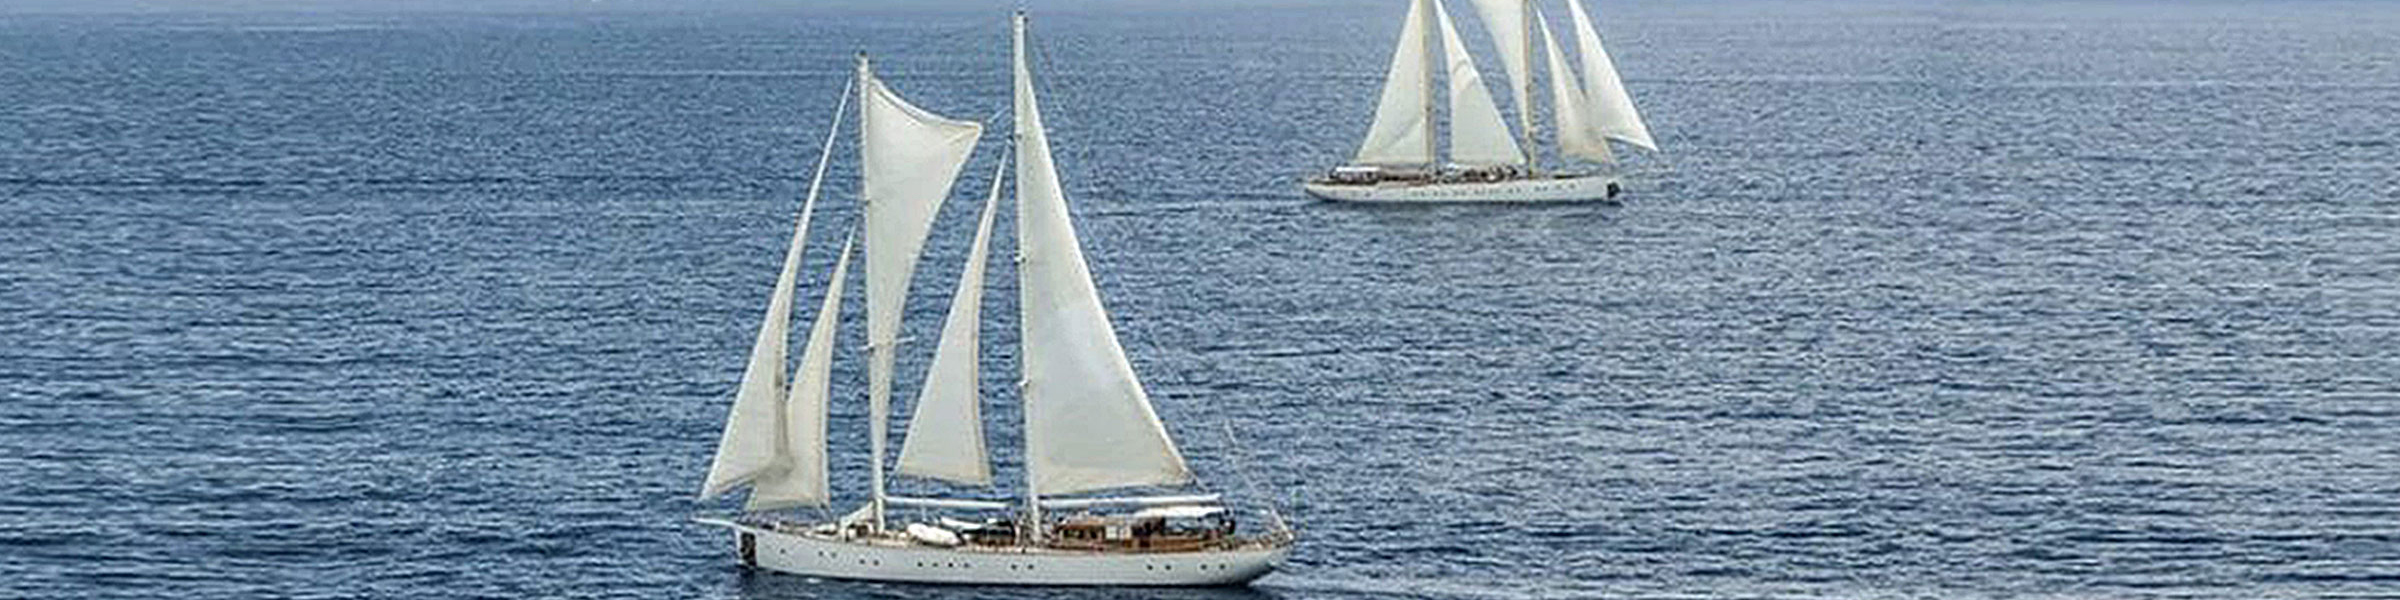 Headerbeeld-Sailing-Classic-slider5